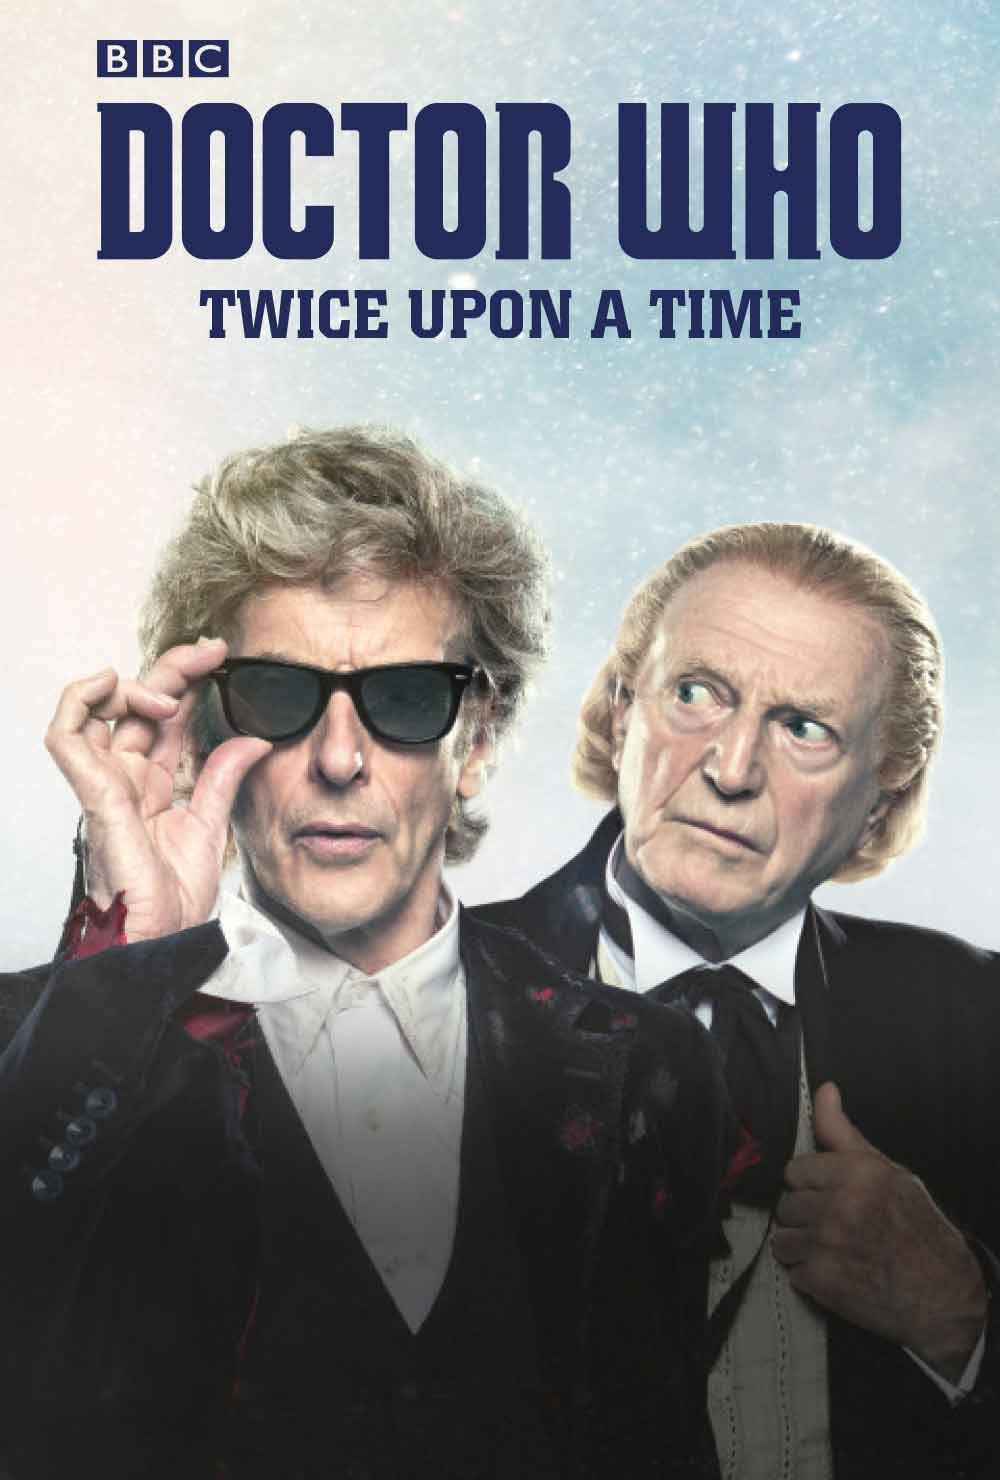 4K Blu-ray : Doctor Who: Twice Upon A Time (4K Mastering)